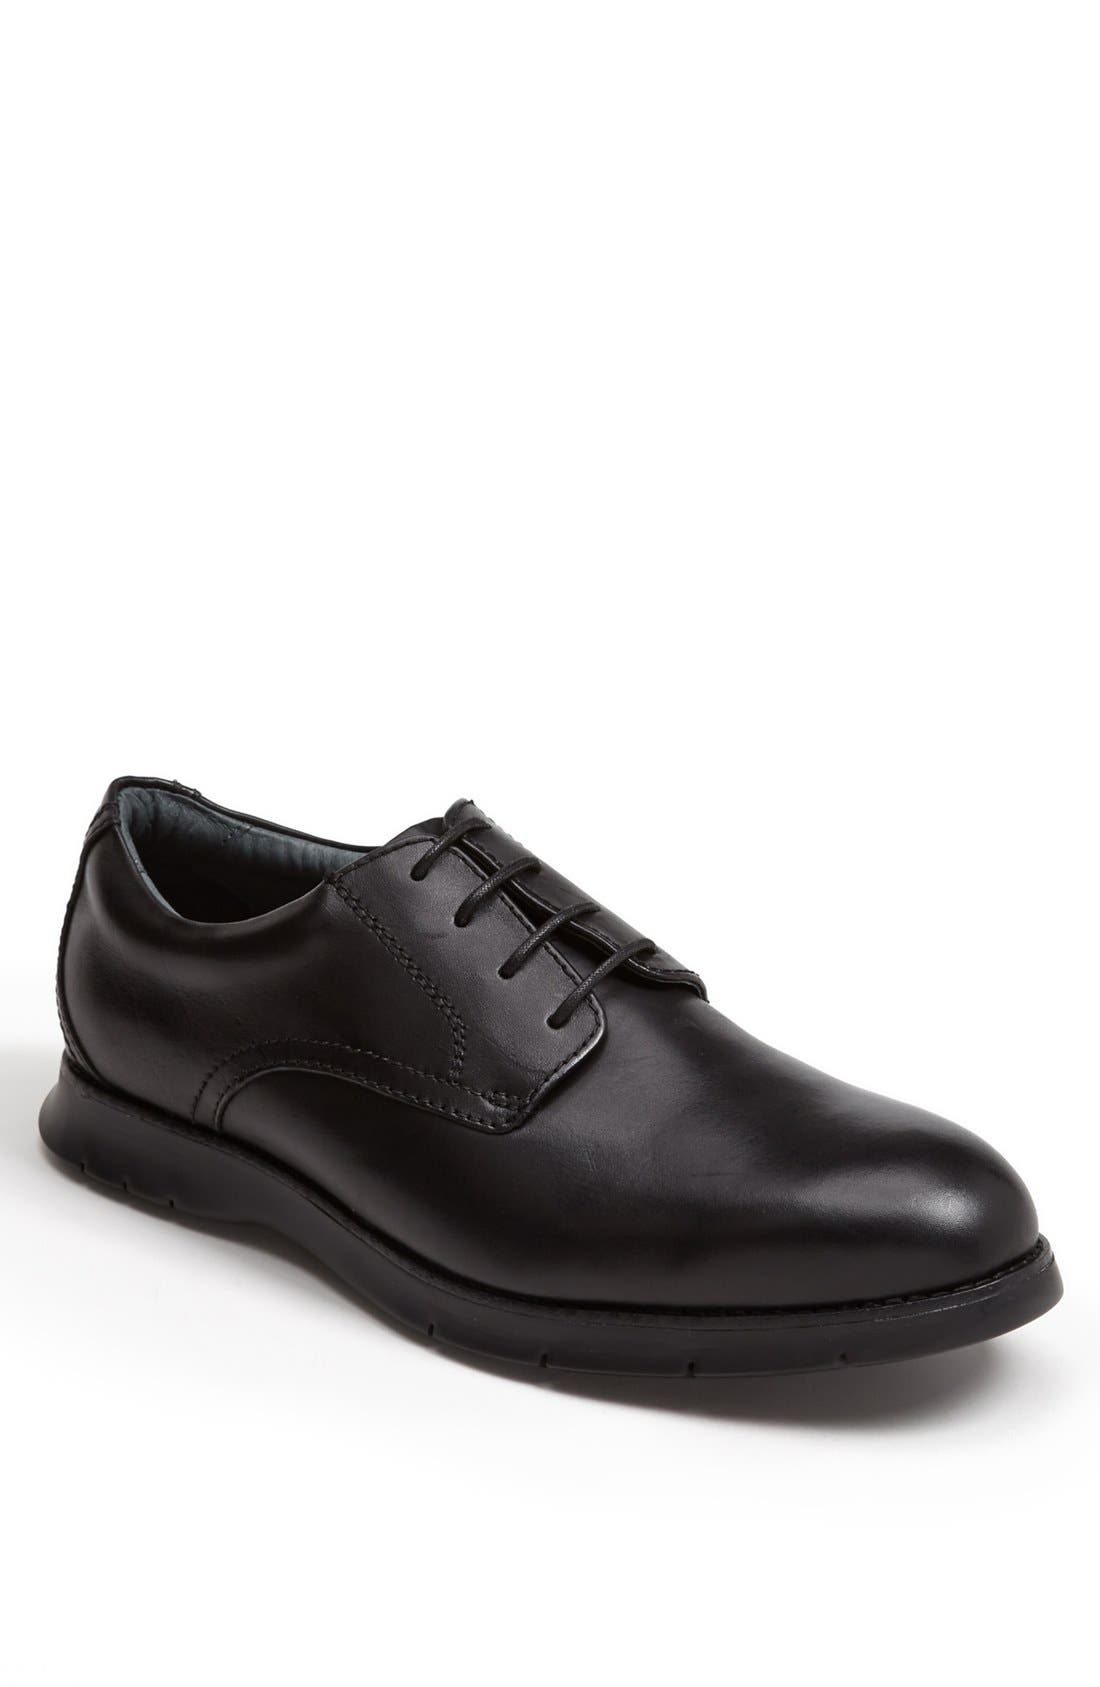 Alternate Image 1 Selected - Florsheim 'Flites' Plain Toe Derby